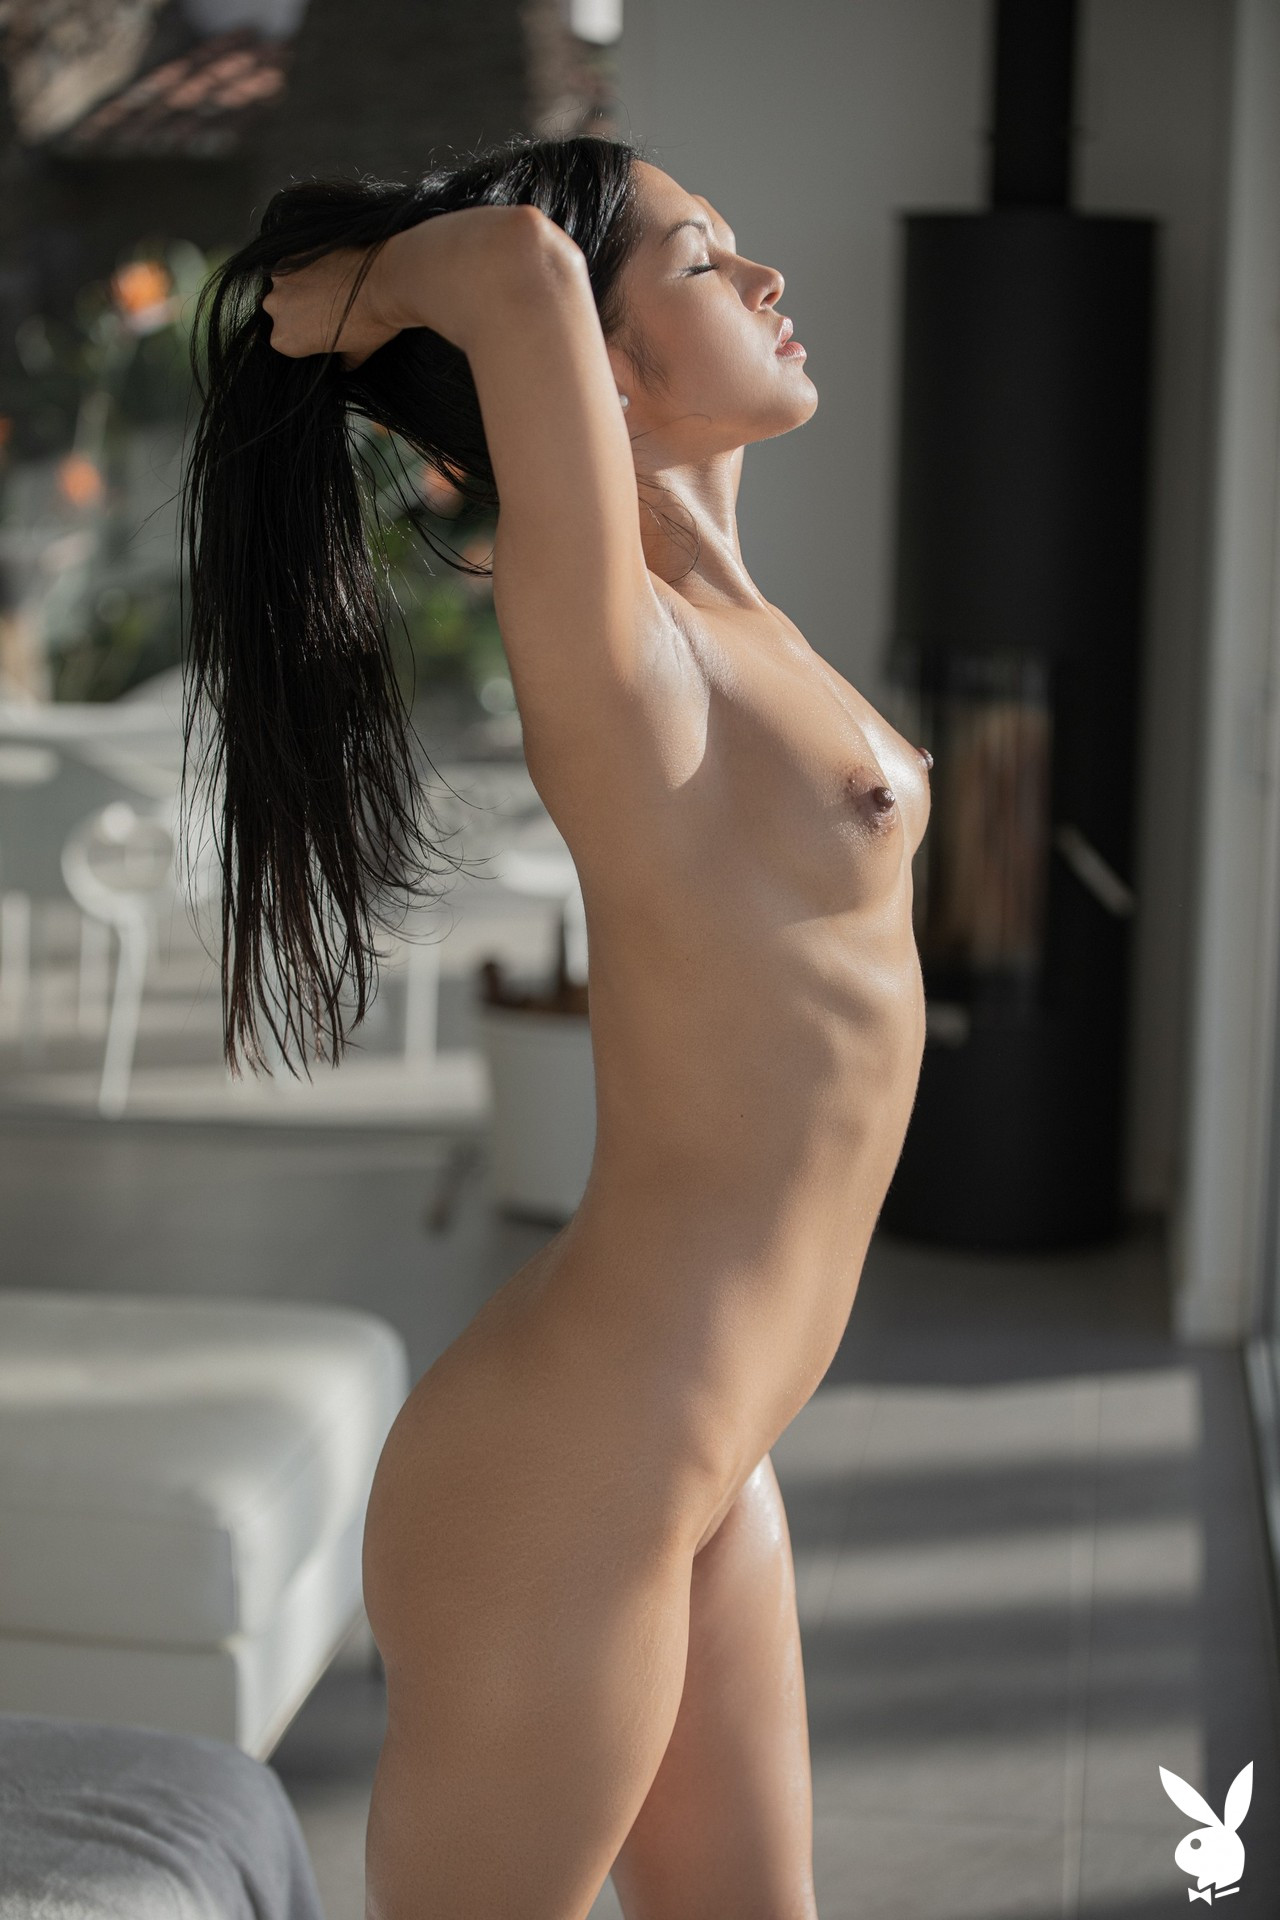 Chloe Rose In Exquisite View Playboy Plus (15)